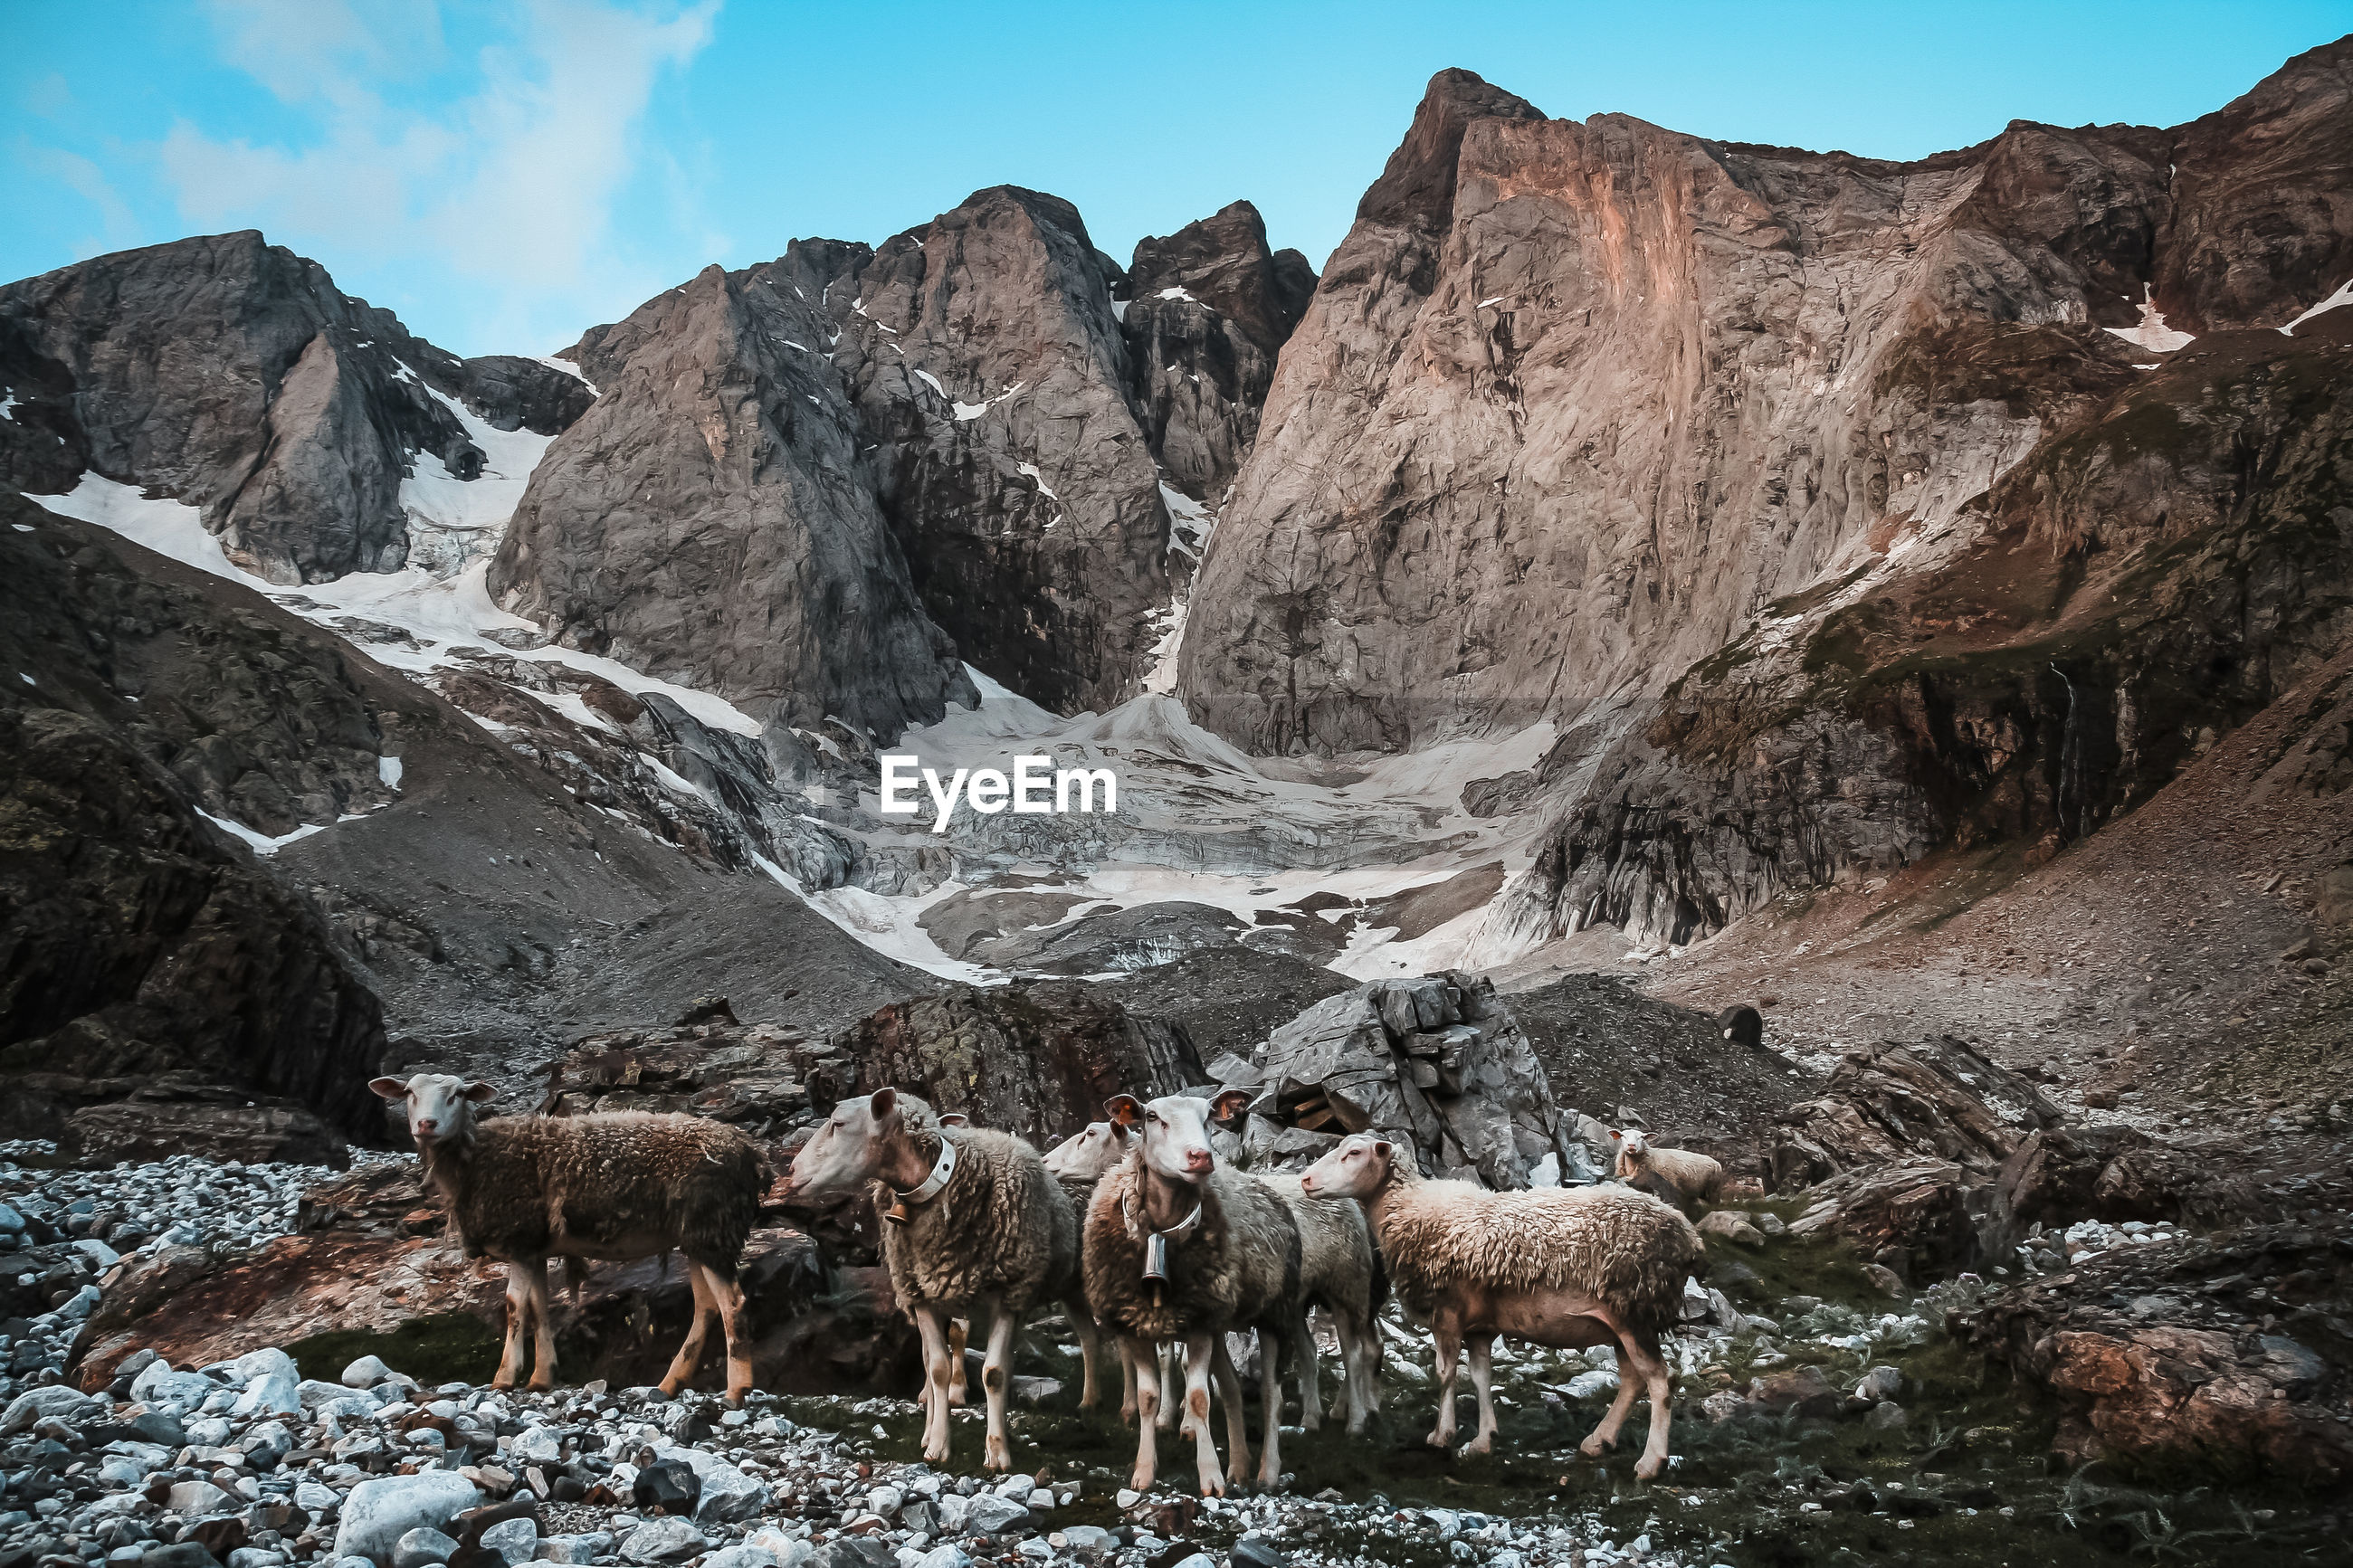 PANORAMIC VIEW OF SHEEP ON MOUNTAIN